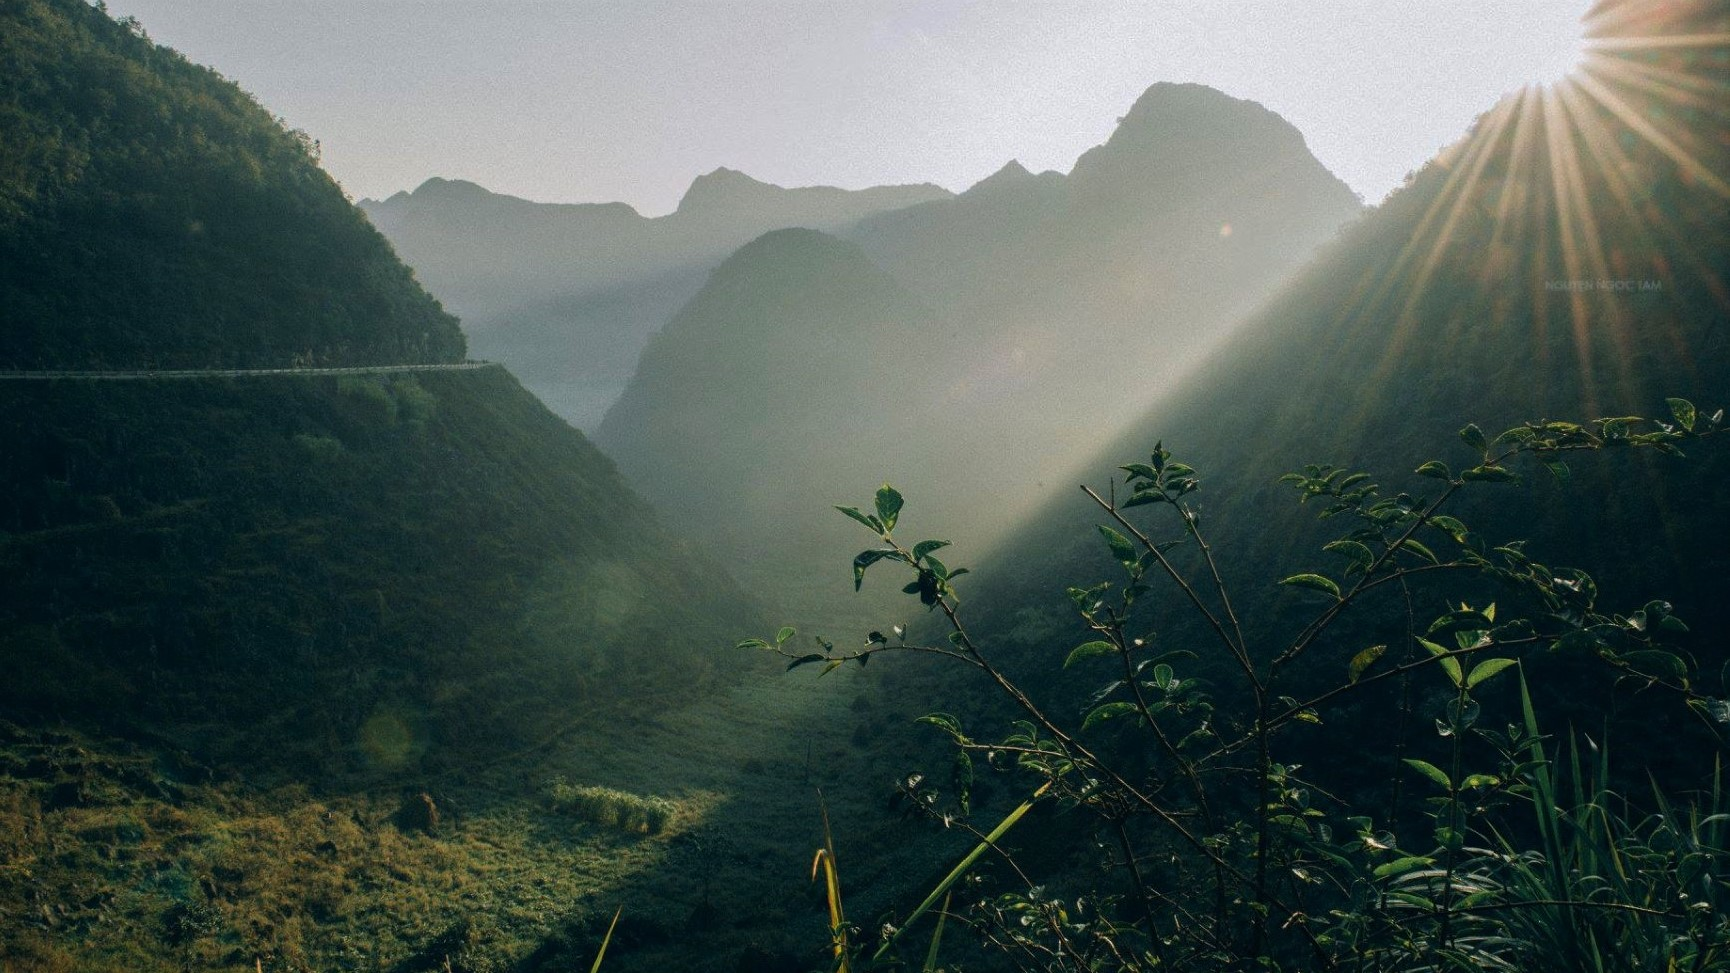 A Journey of Happiness - Ha Giang - Vietnam